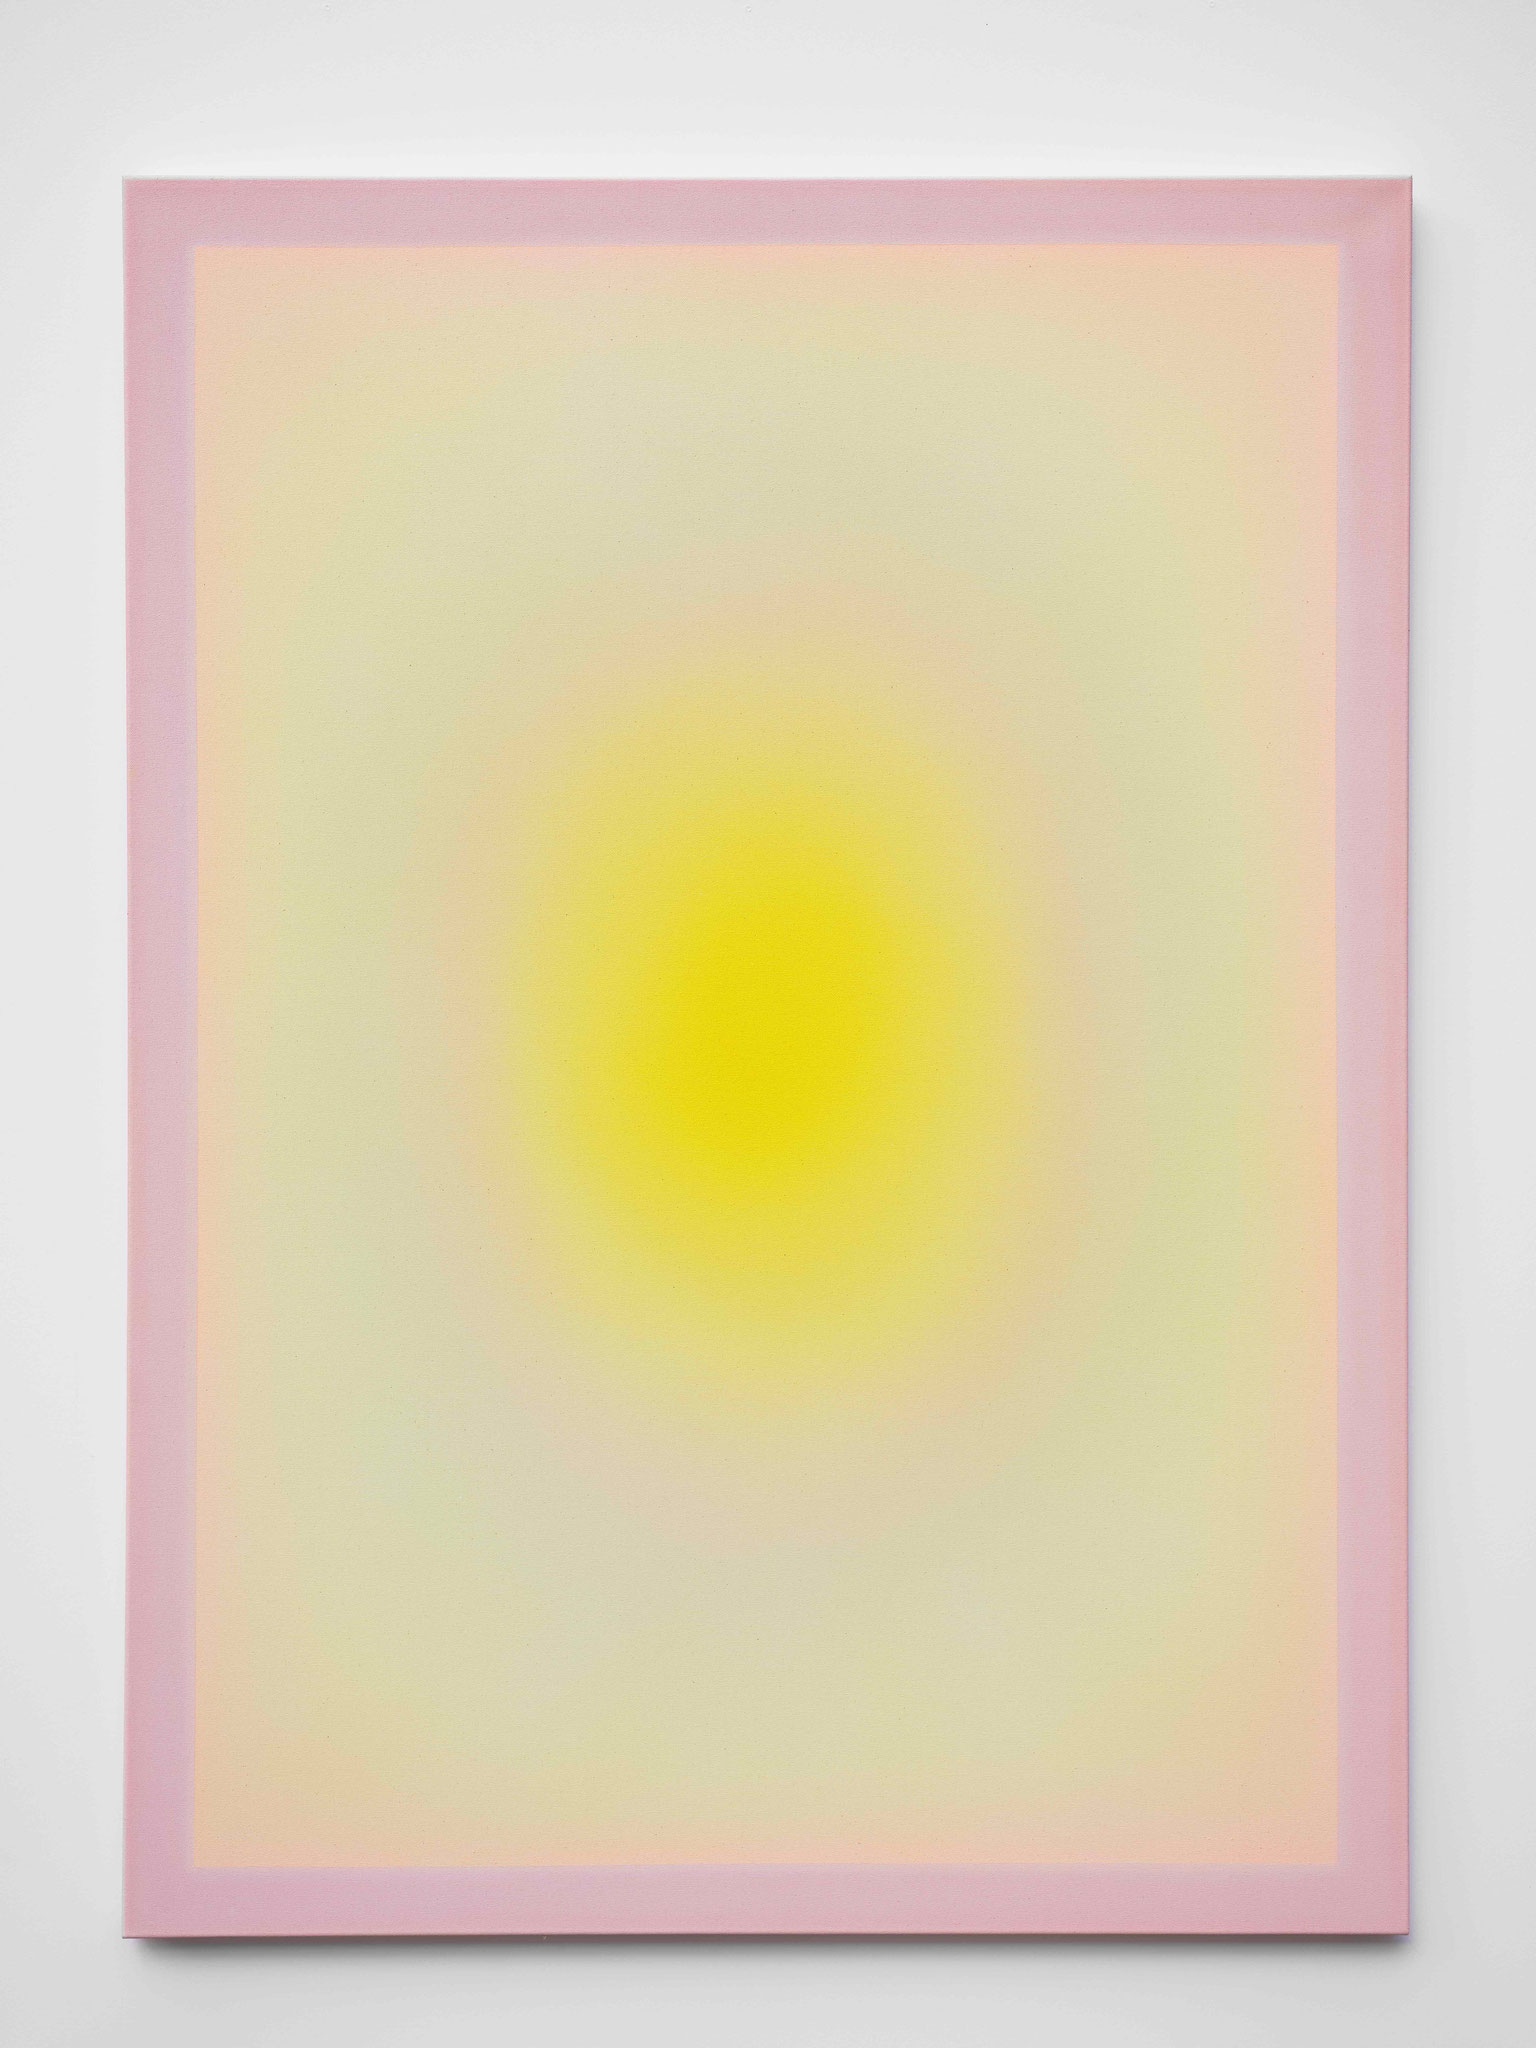 "Alina Birkner ""Untitled (Citrinitas)"" 2019, 180x130 cm, Acrylic on Canvas"